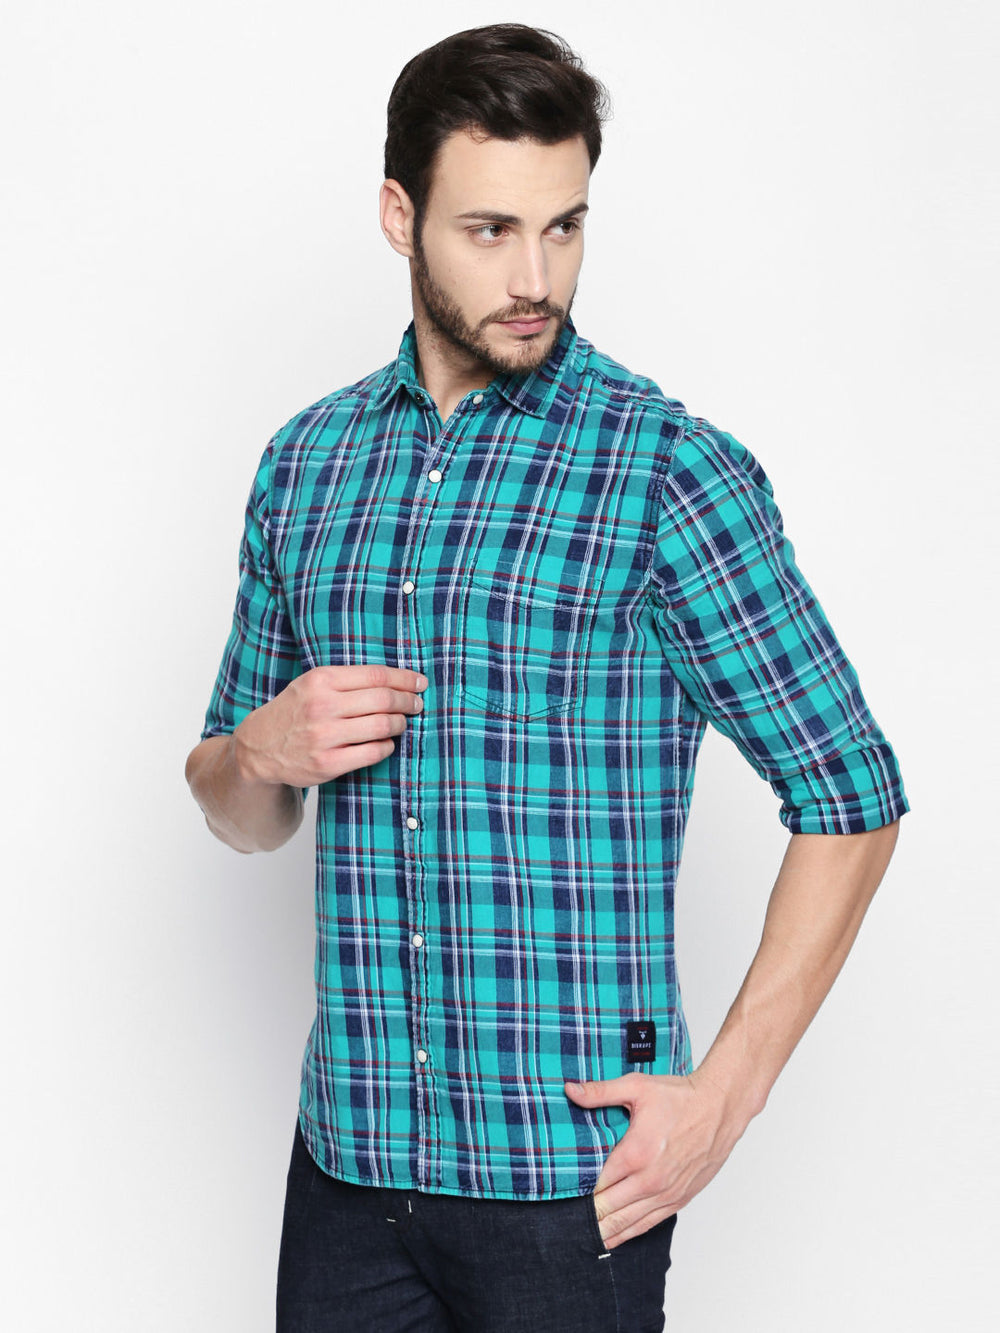 Disrupt Indigo Lagoon Green Cotton Fabric Full Sleeve Checkered Shirt